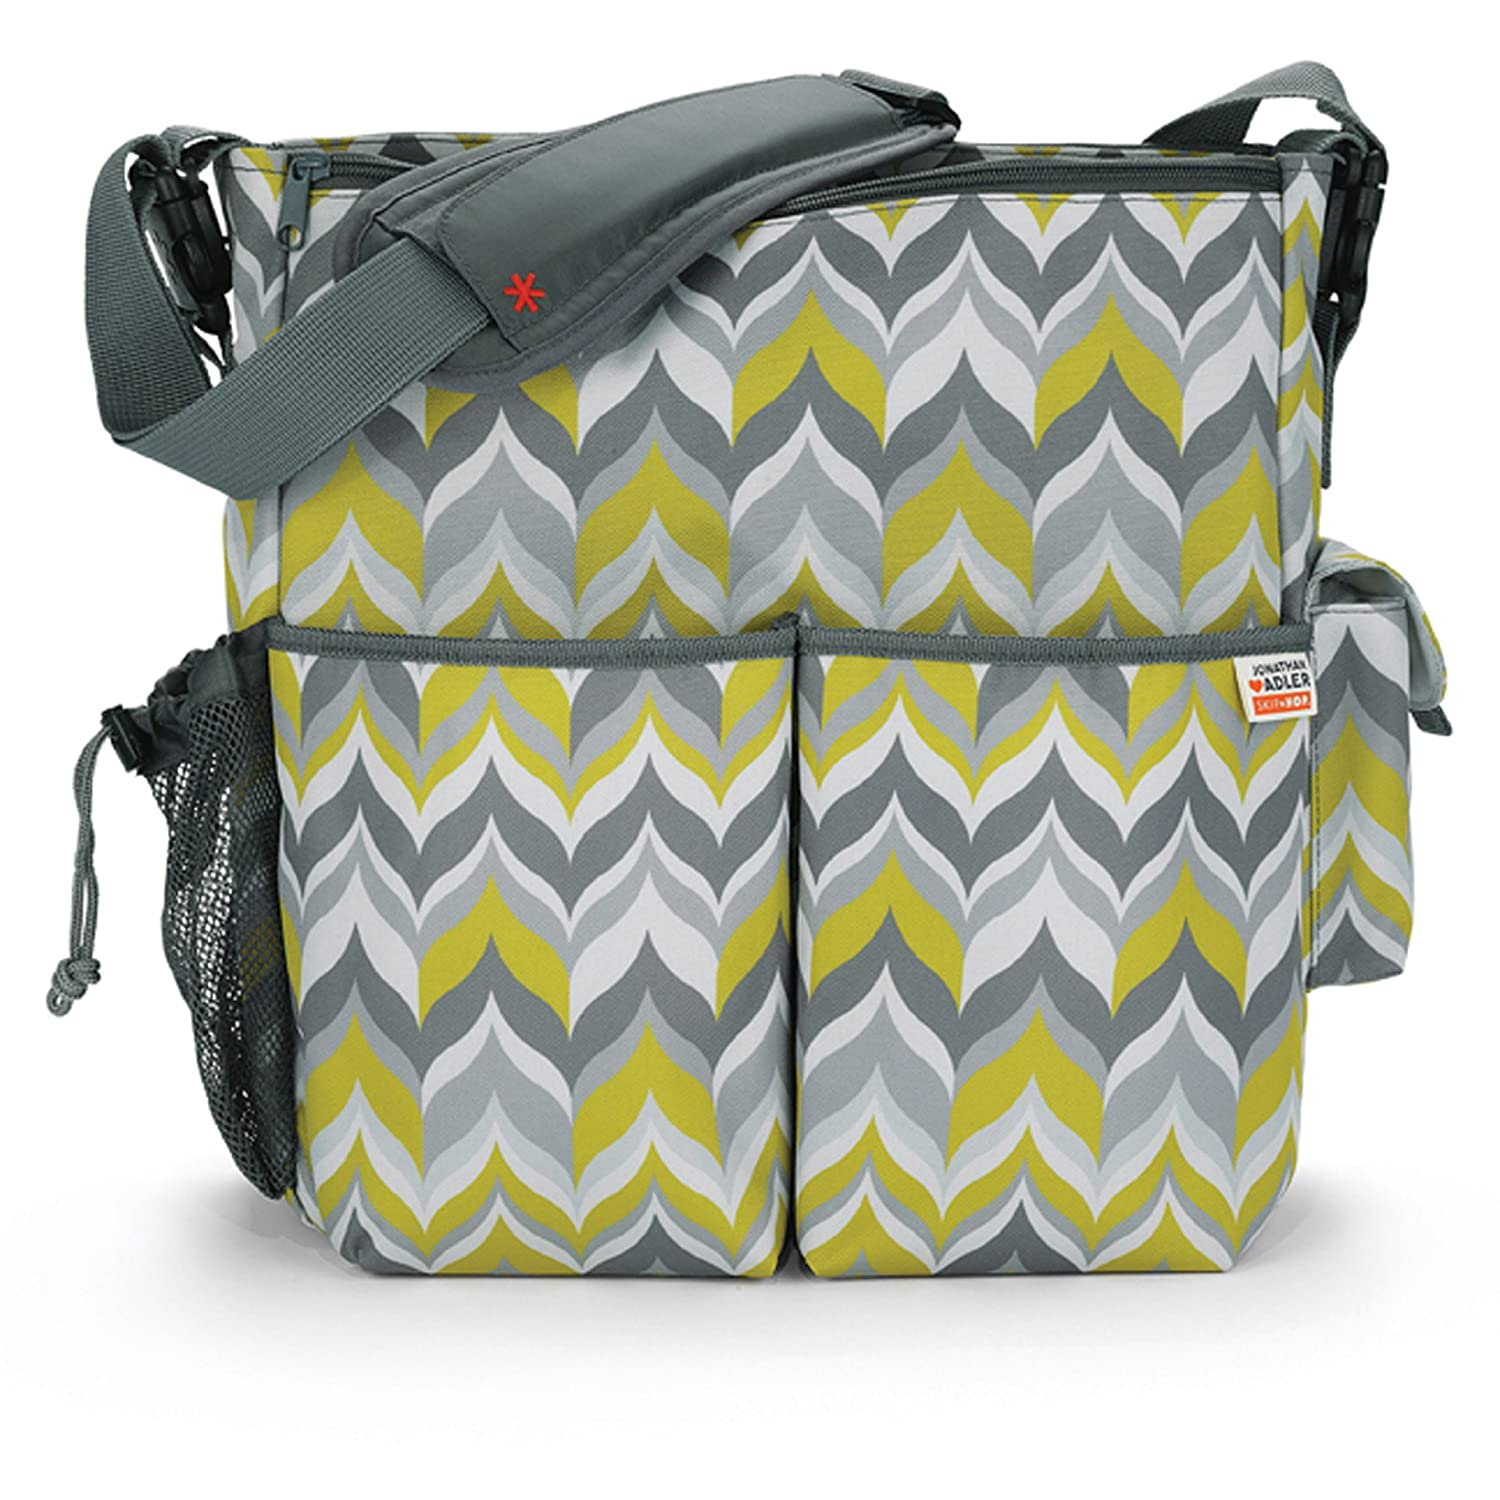 Skip Hop Jonathan Adler DuoDiaper Bags, Flame Yellow (Discontinued by Manufacturer)